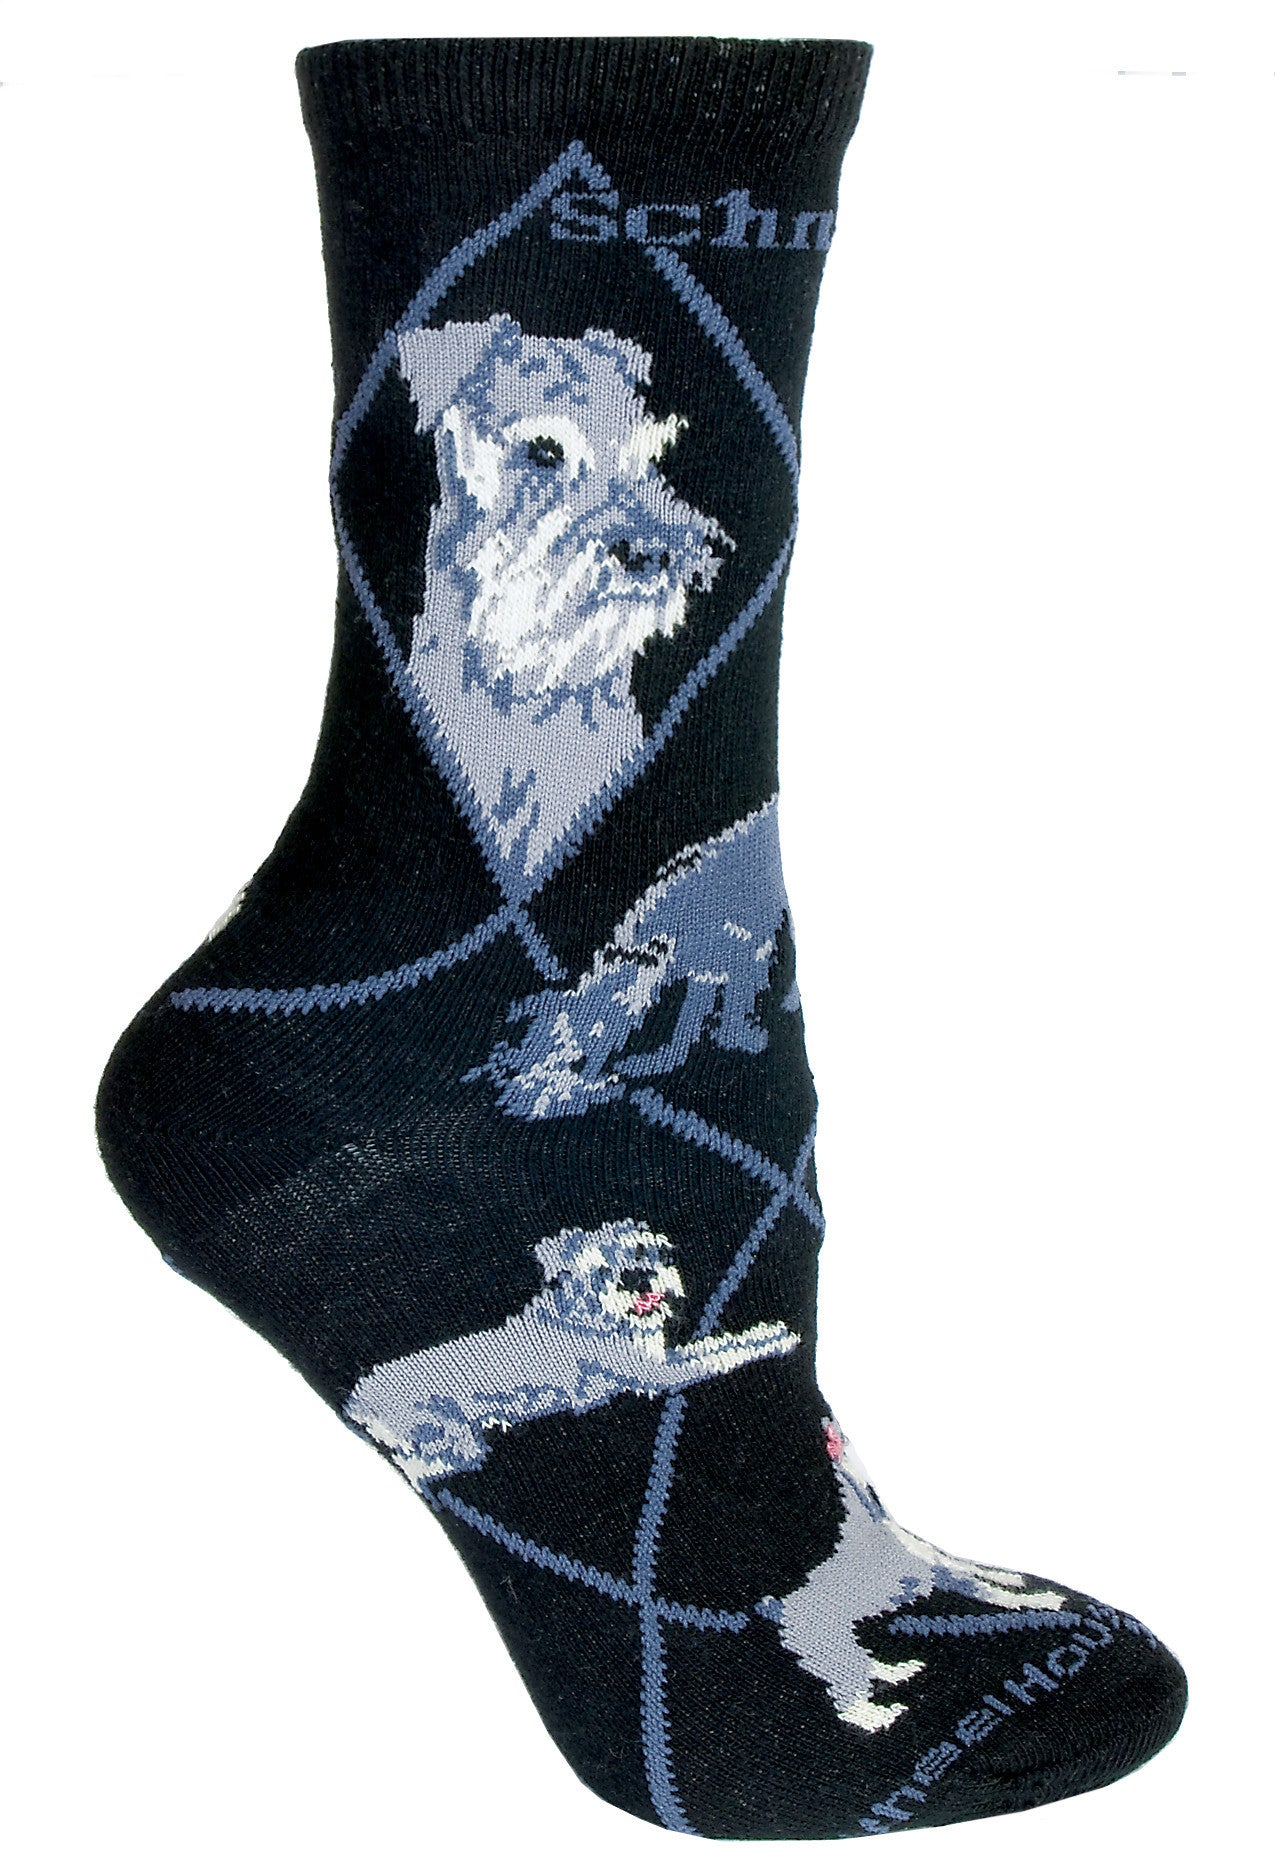 Schnauzer Crew Socks on Black